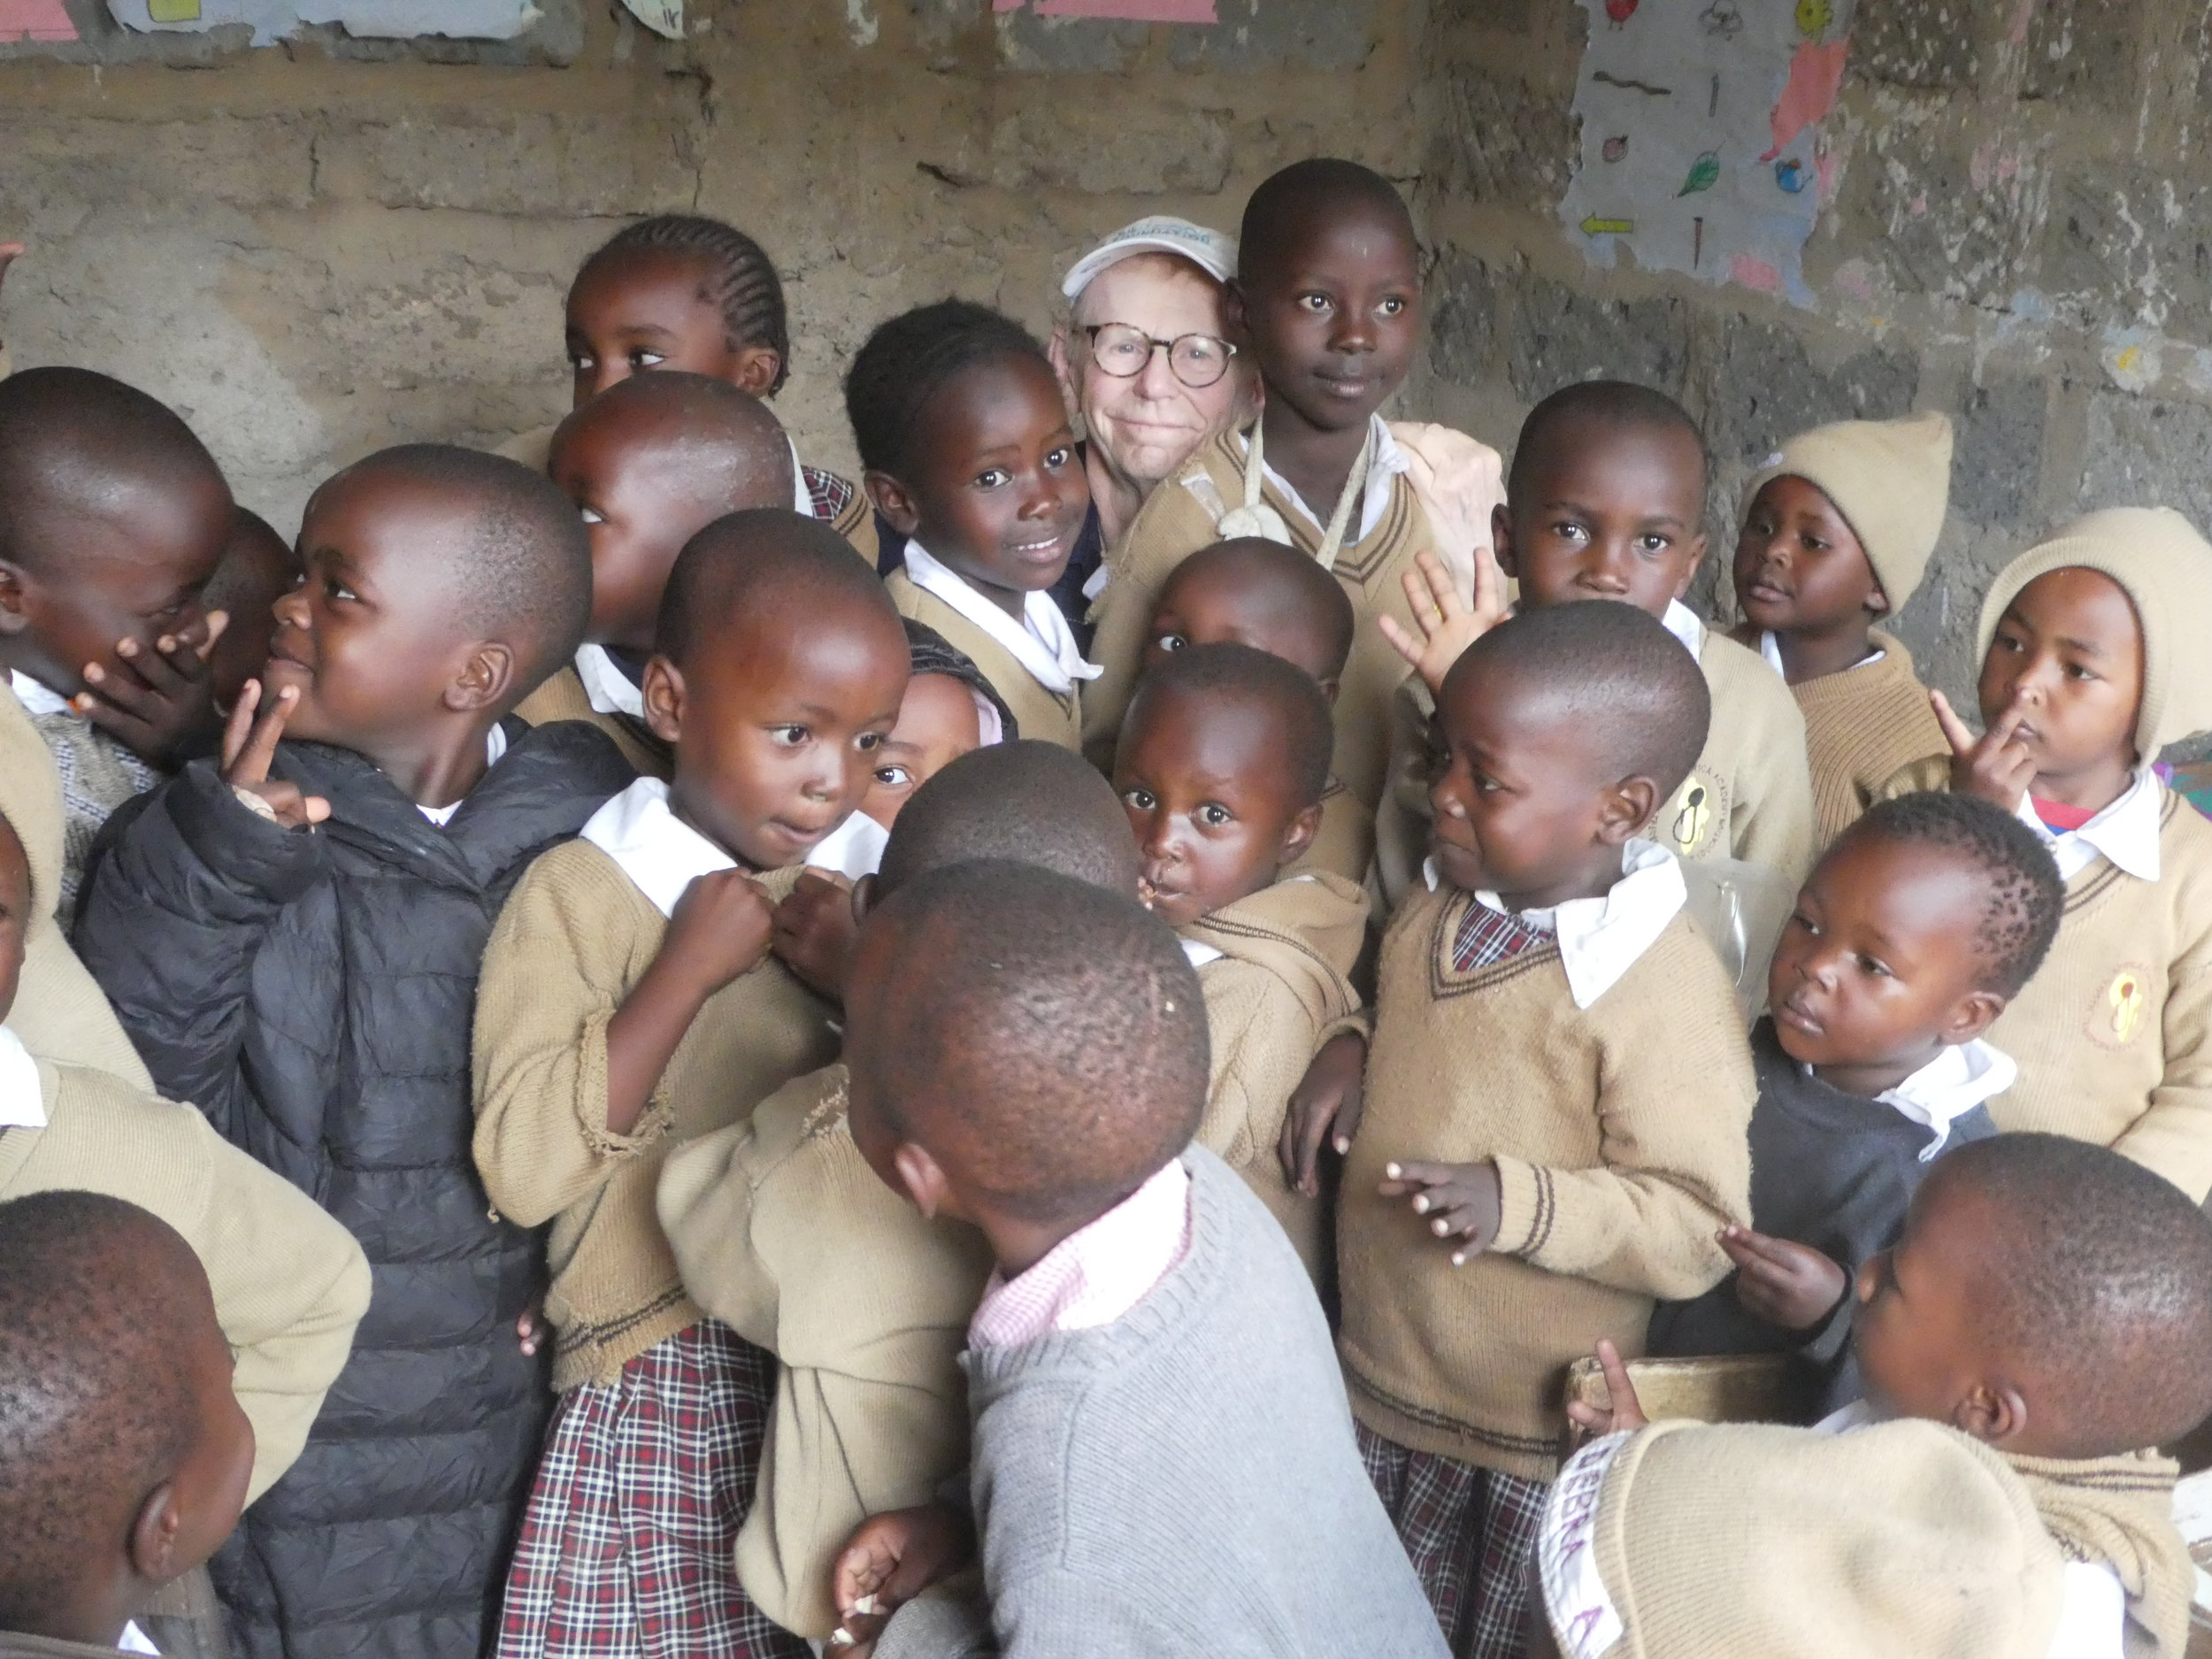 A group of students at Mamma Africa in Mathare area of Nairobi.